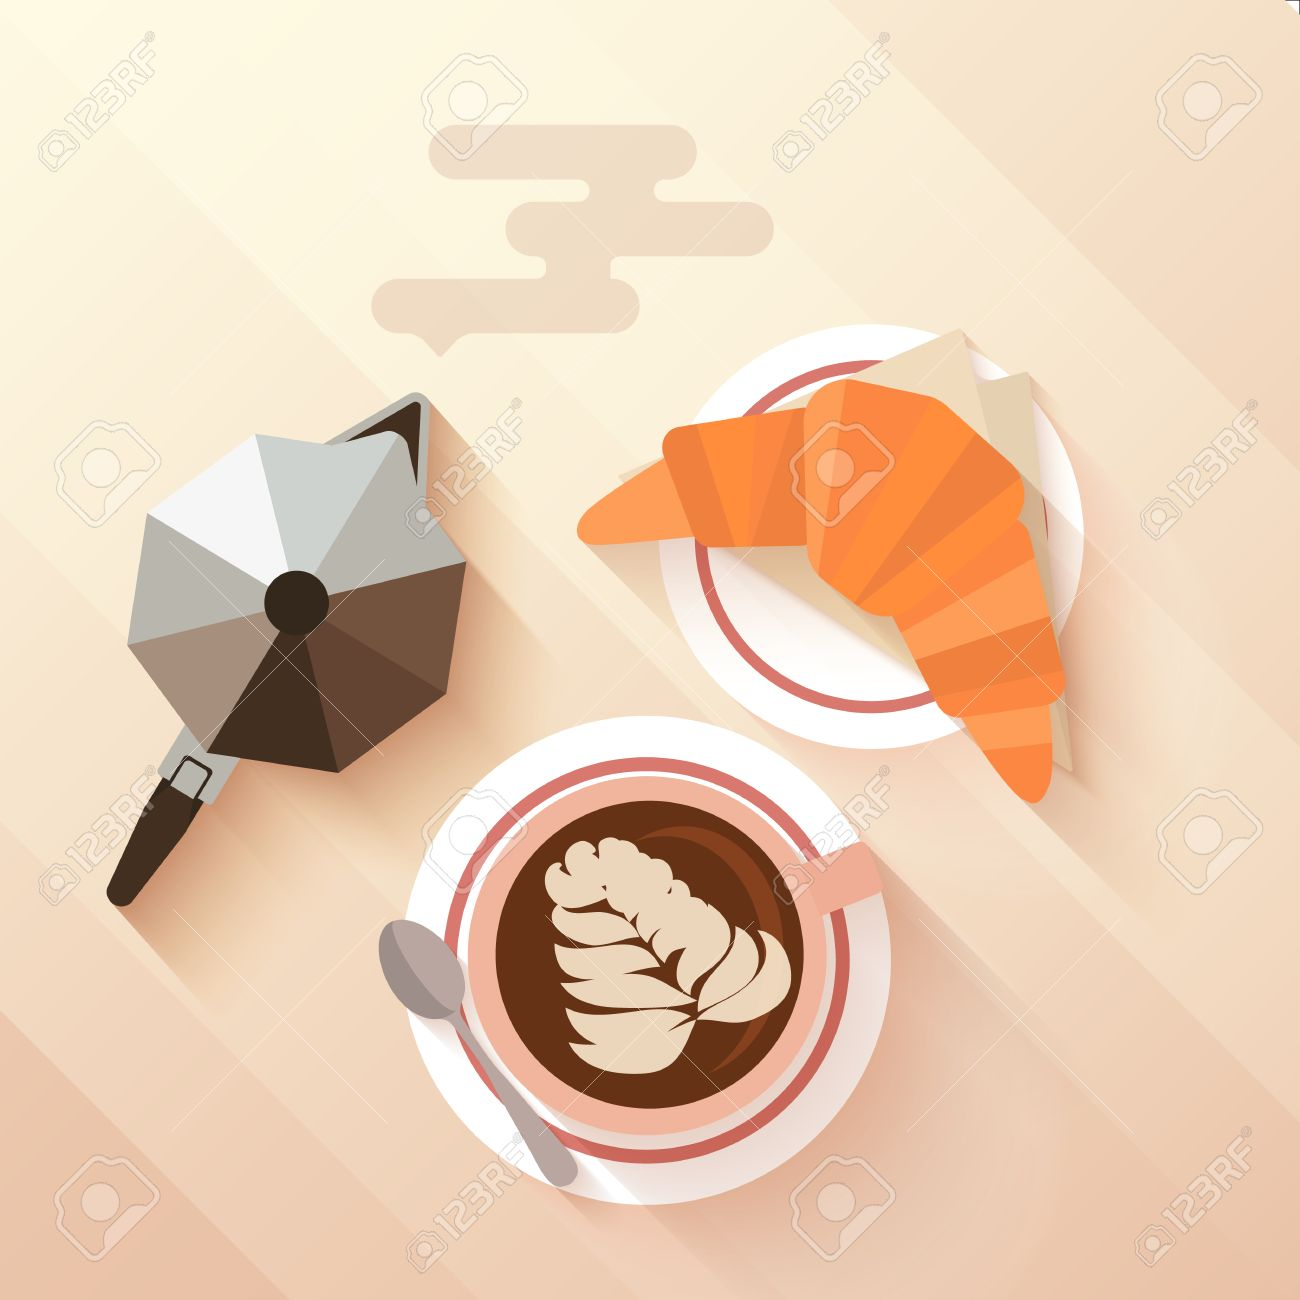 Italian Breakfast With A Cup Of Cappuccino Croissant And Coffee Maker Concept For Menu